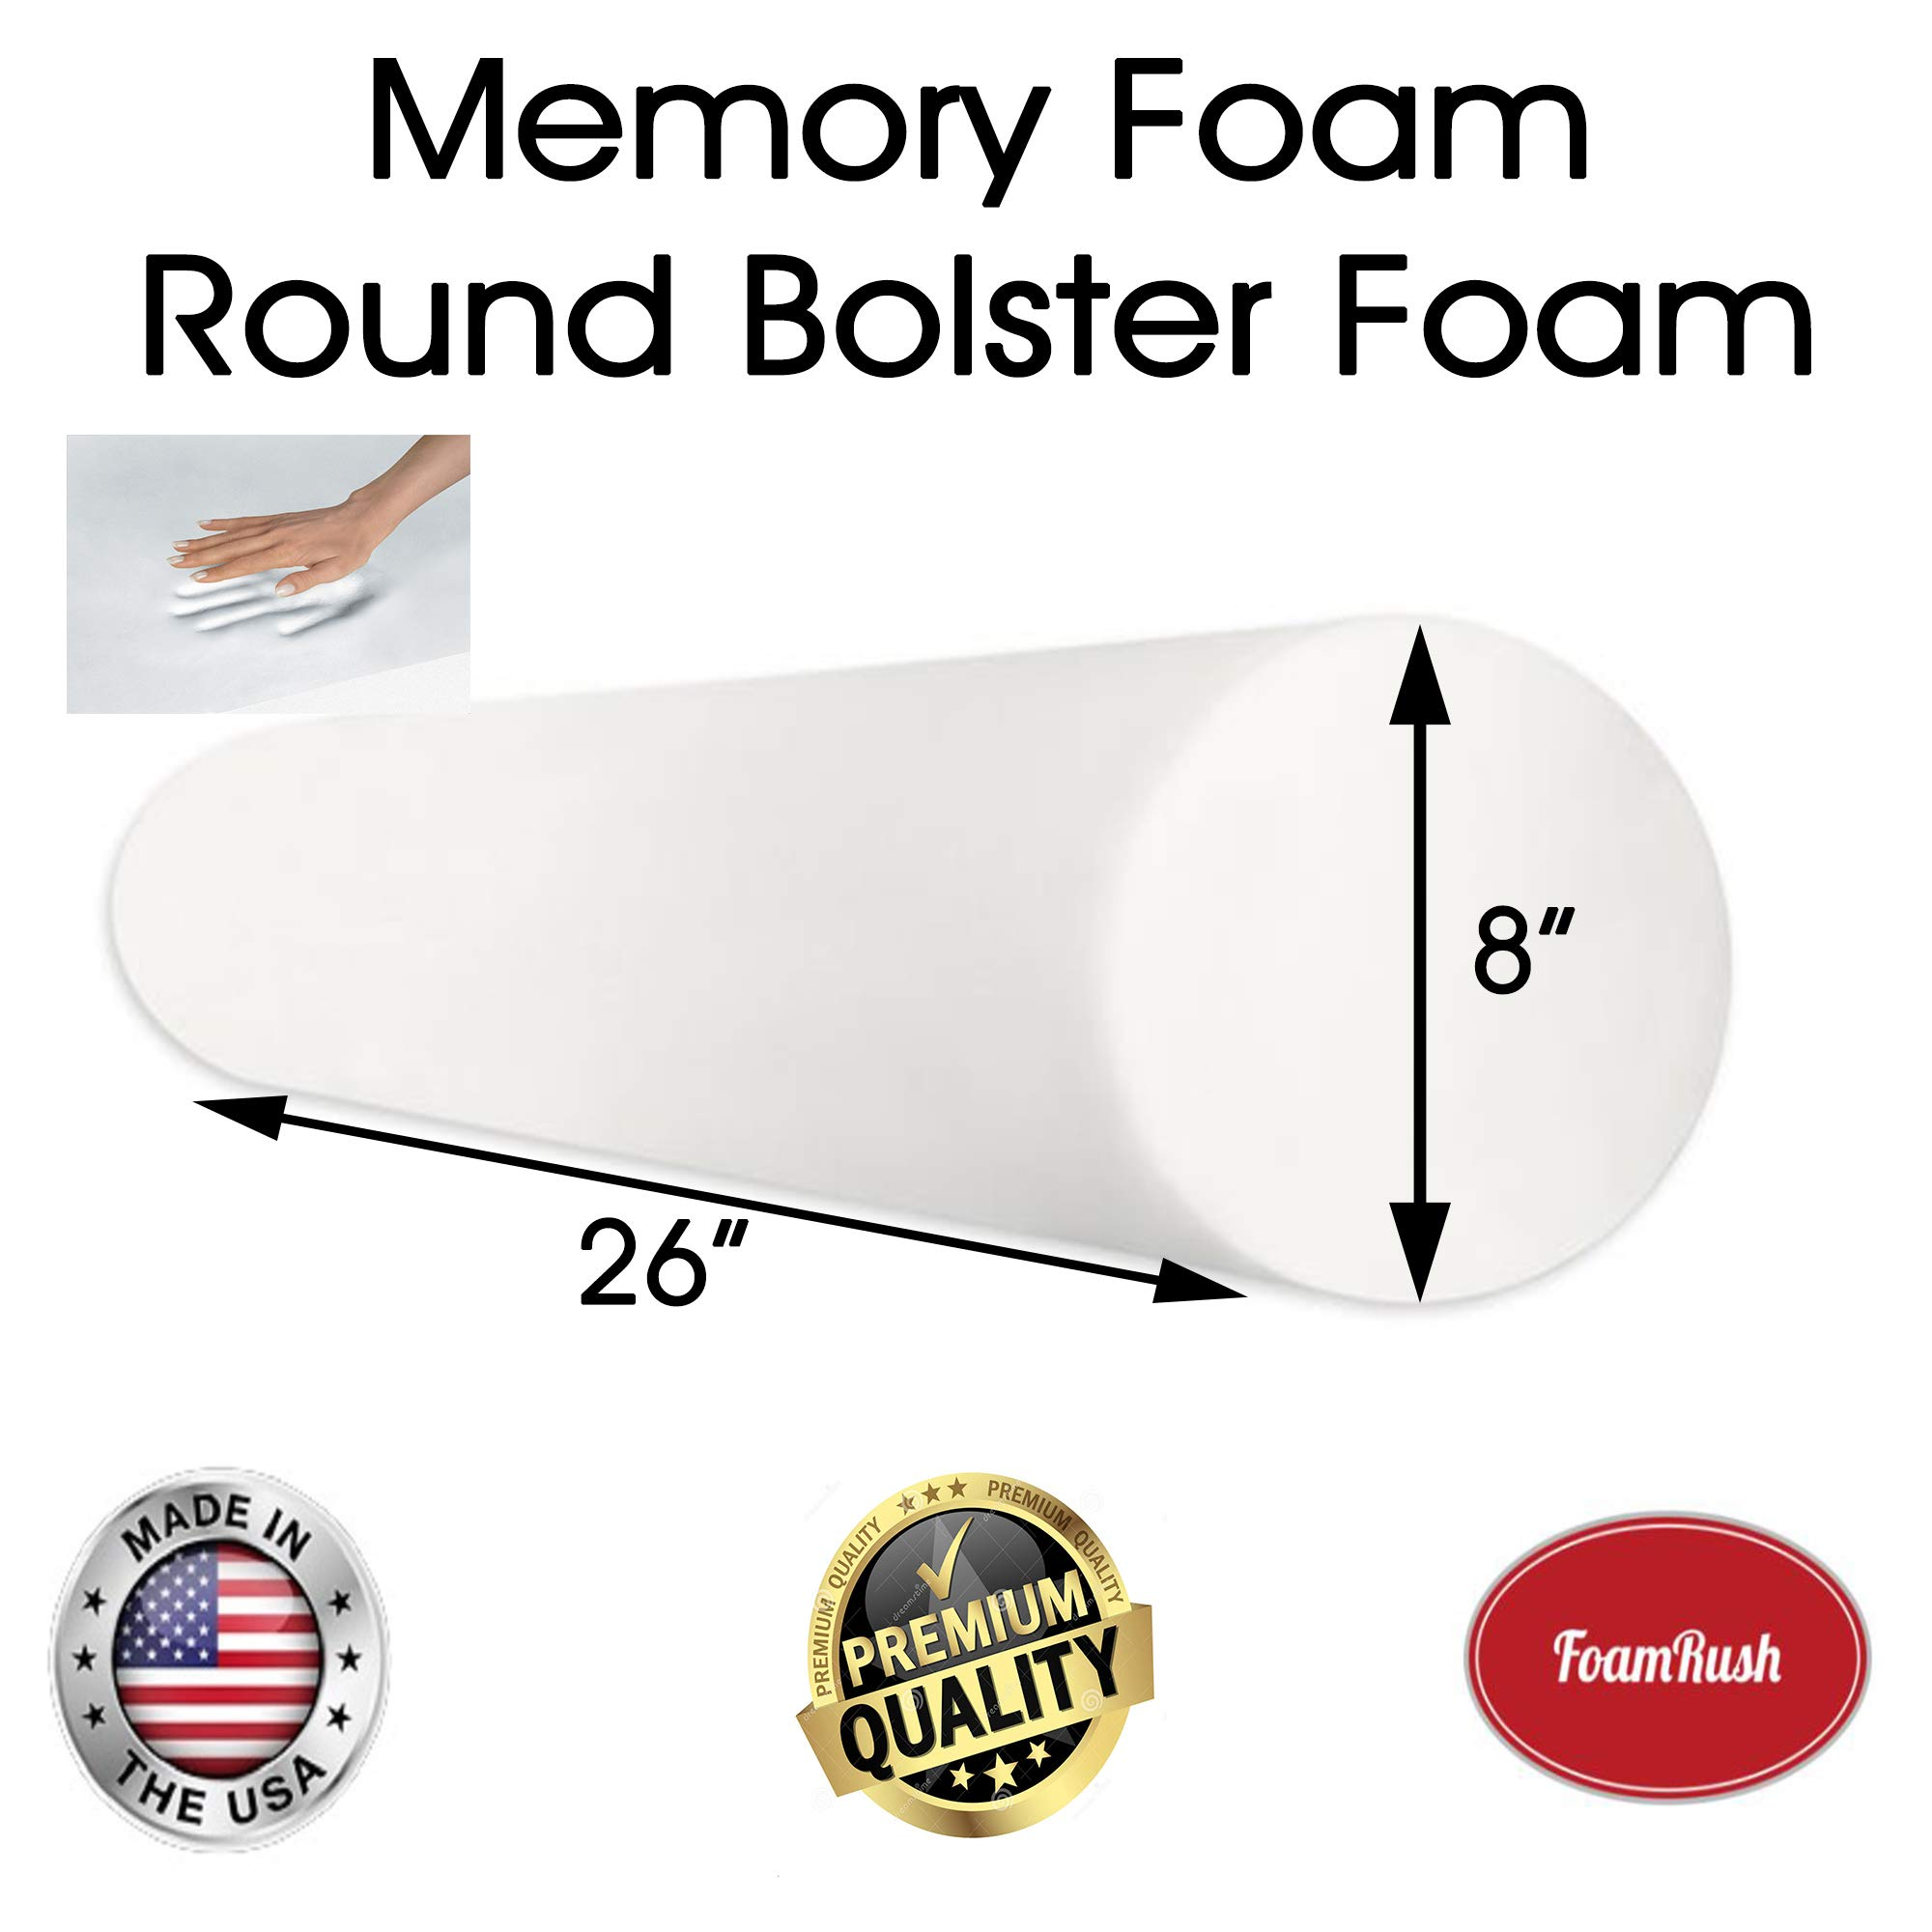 FoamRush 8'' Diameter x 26'' Long Premium Quality Round Bolster Memory Foam Roll Insert Replacement (Ideal for Home Accent Décor Positioning and General Fitness) Made in USA